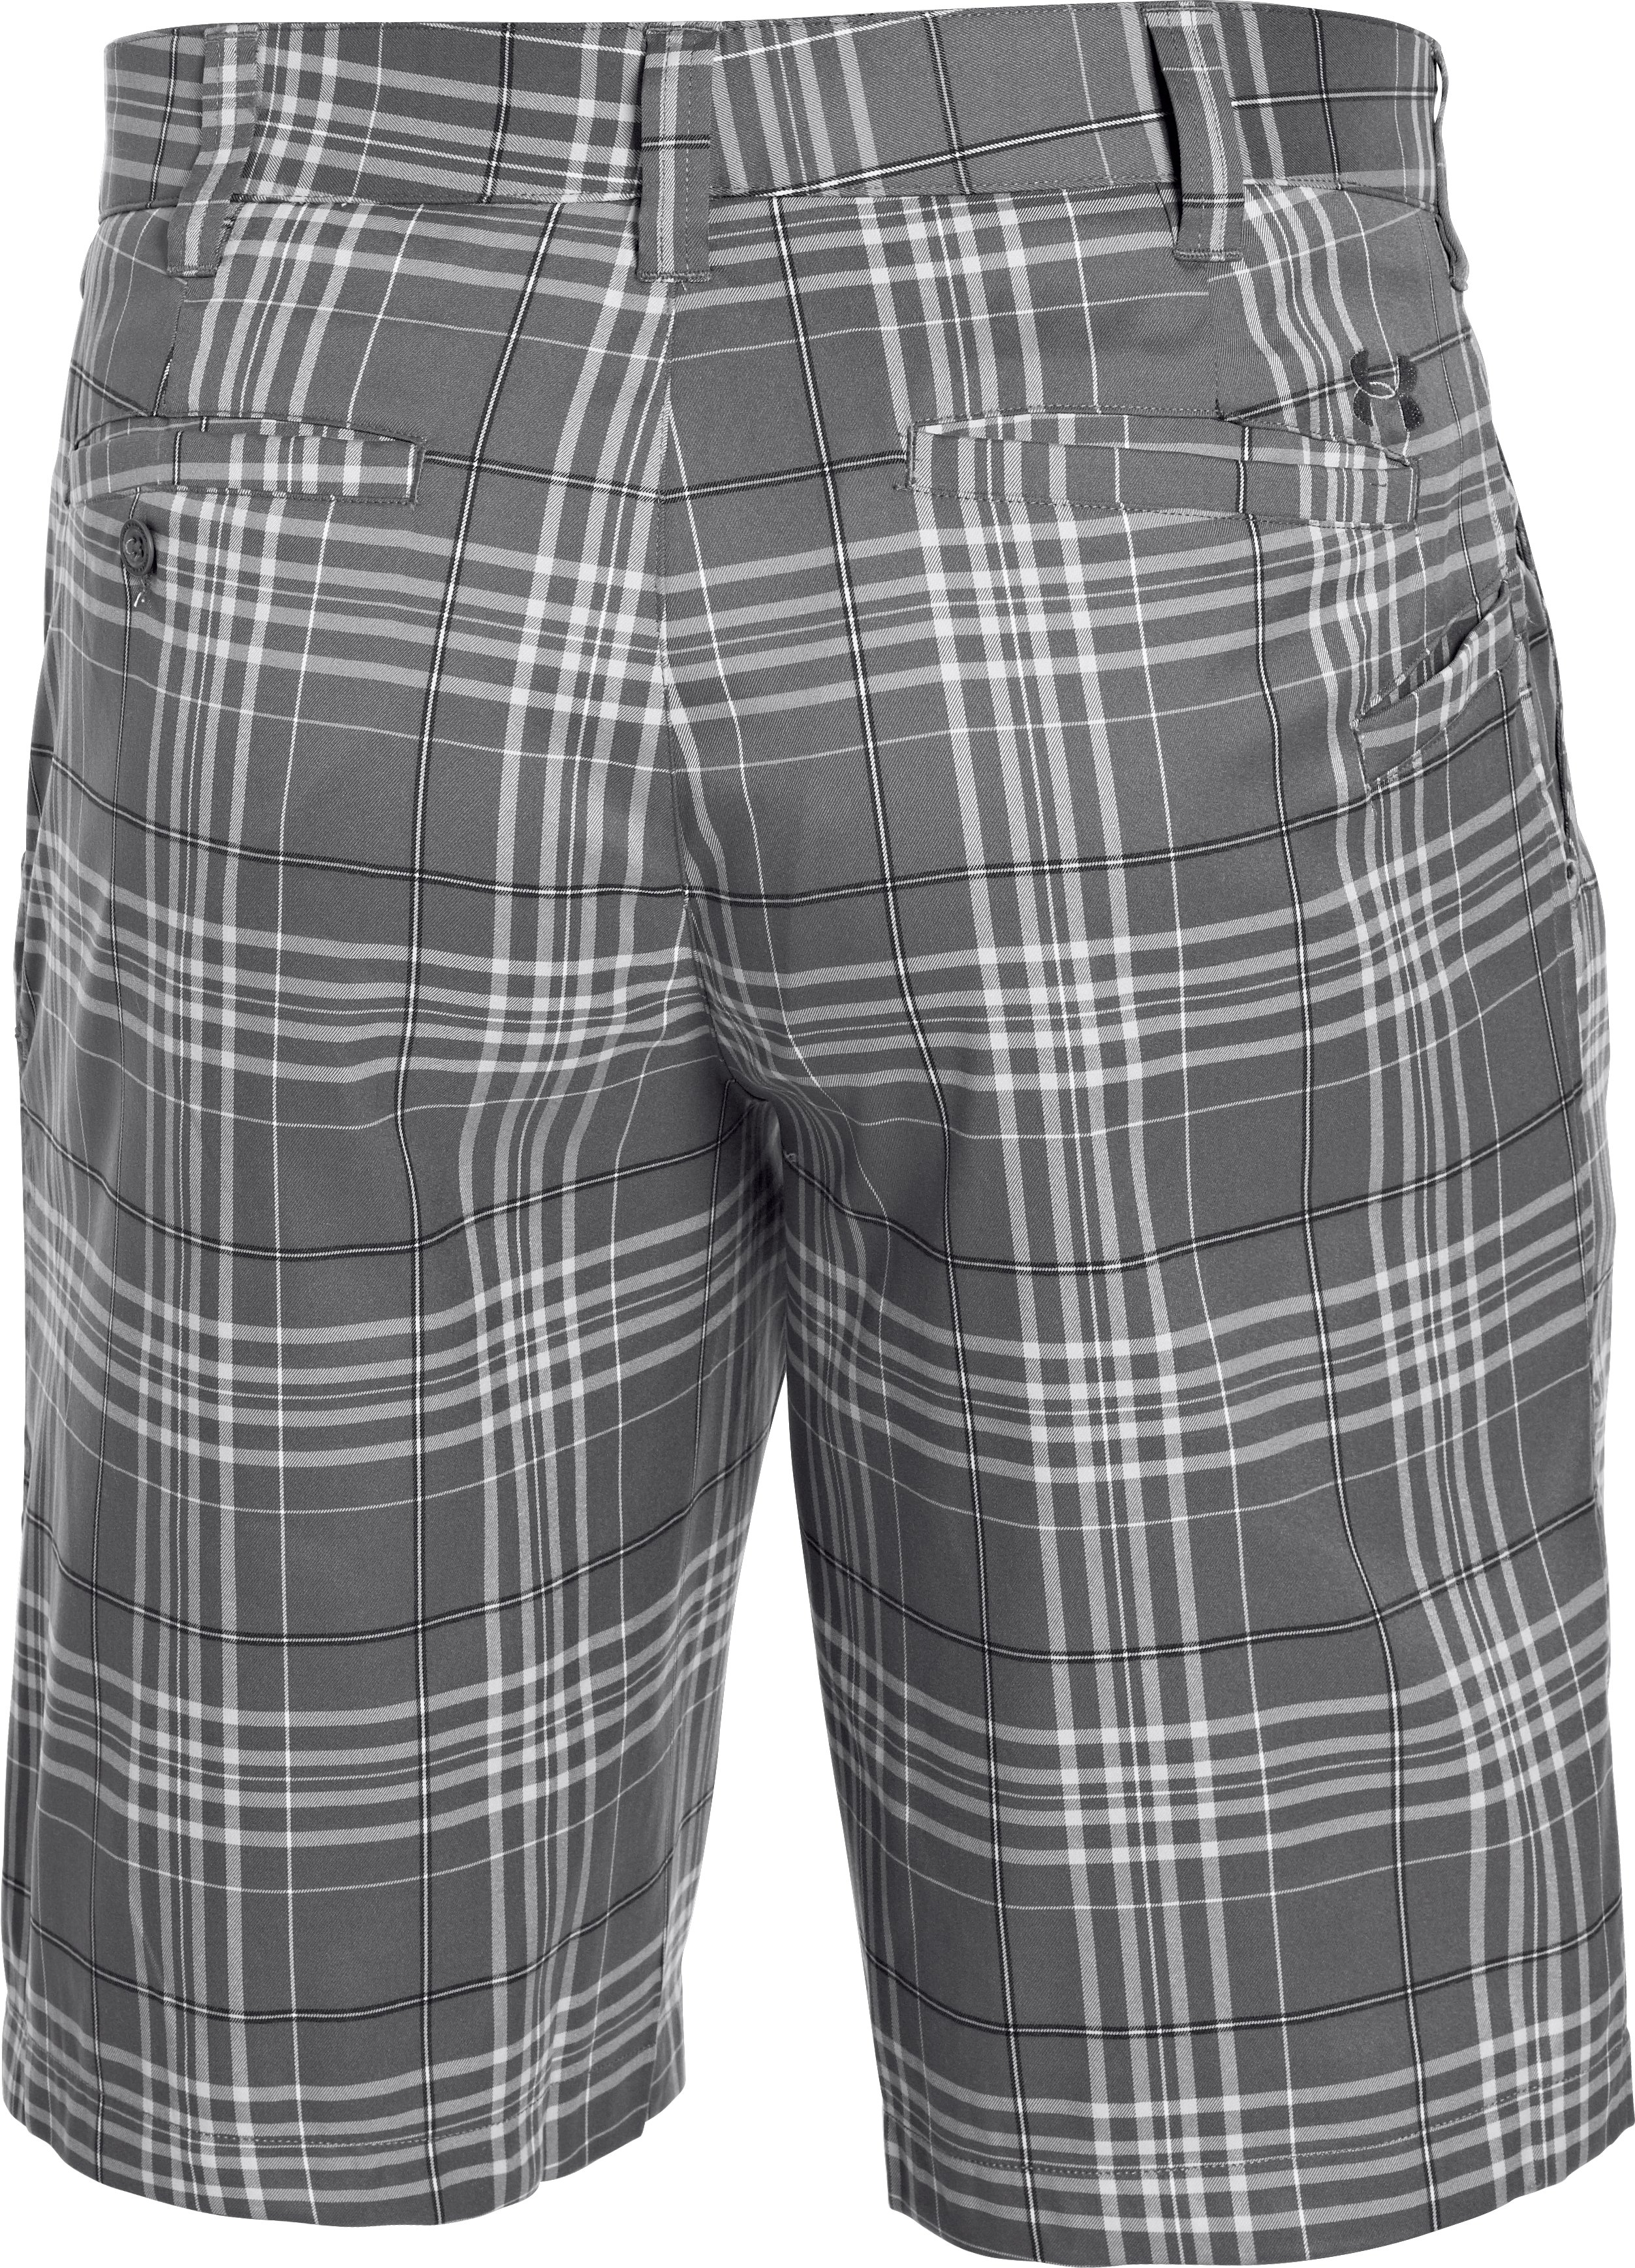 Men's UA Forged Plaid Golf Shorts 3.5, Graphite